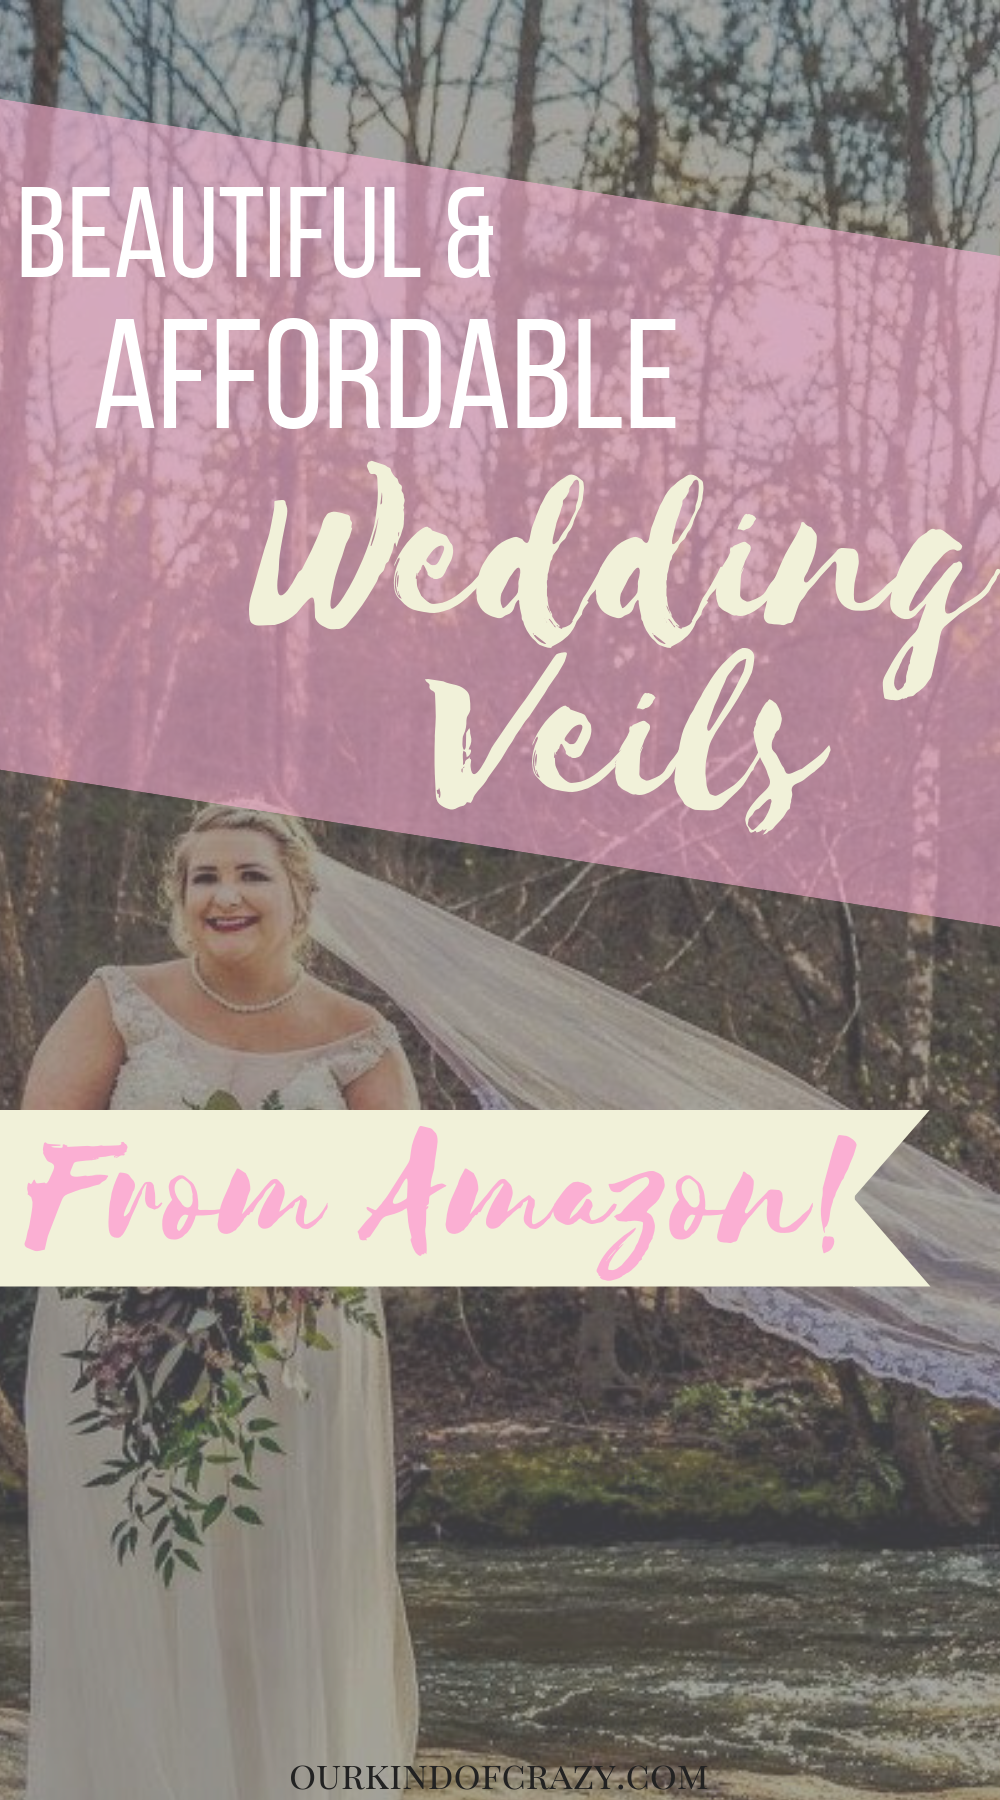 Best Cheap Wedding Veils from Amazon. Don't want to spend tons of money on just your veil? Here are some amazing deals from Brides who have found their Veils on Amazon